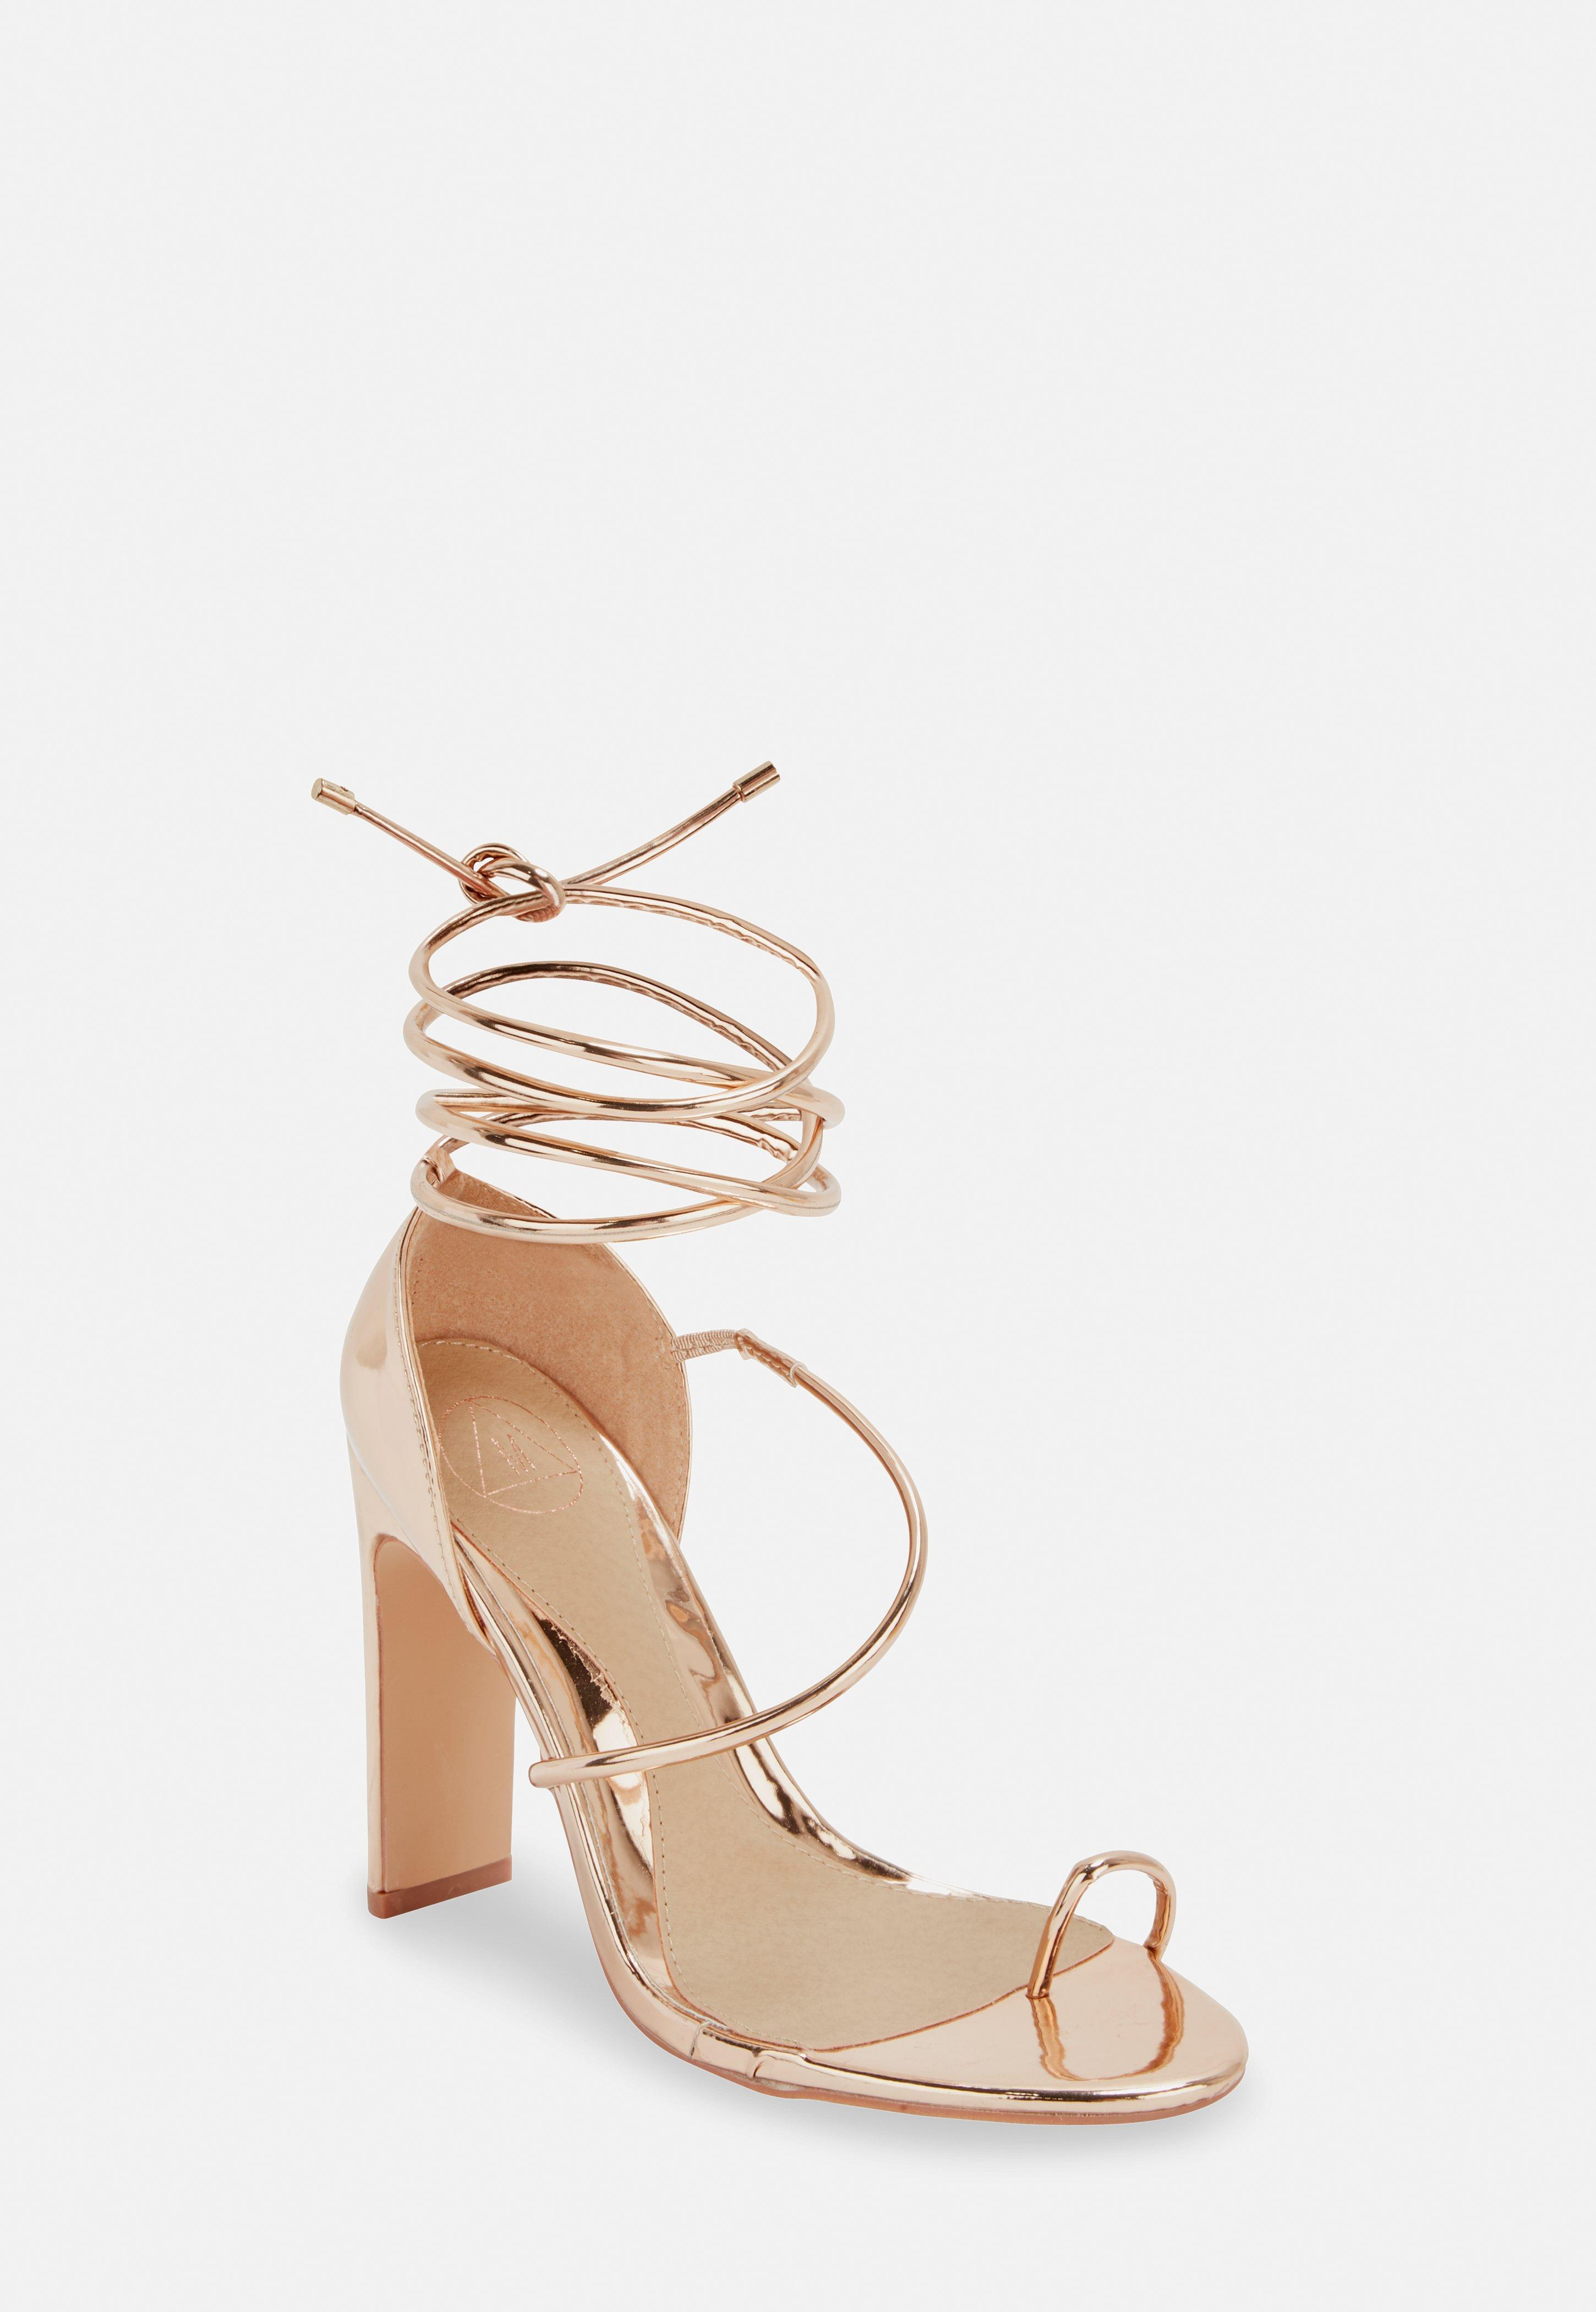 d1f9c87292 Missguided Rose Gold Strappy Toe Post Heeled Sandals in Pink - Lyst